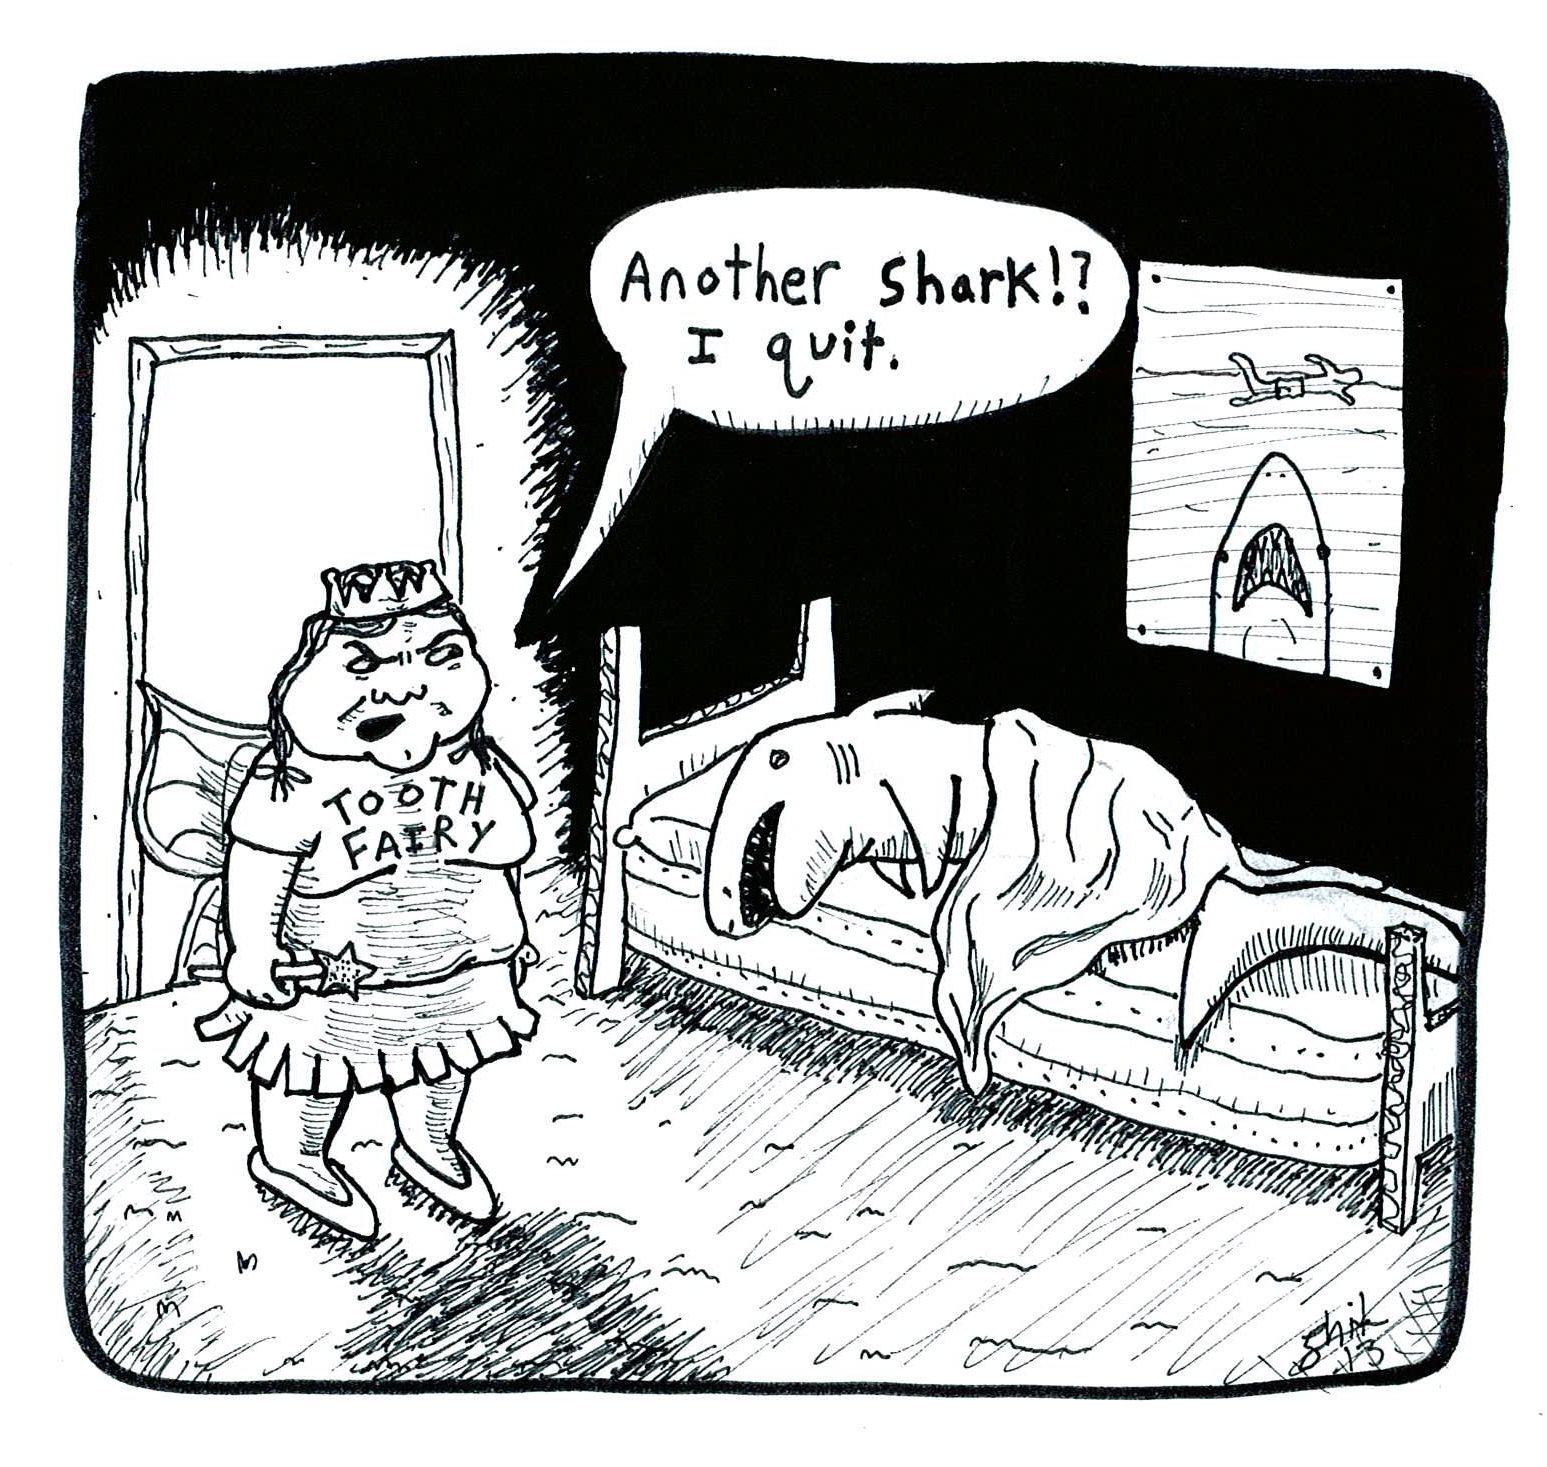 Comic strip illustrating a tooth fairy's frustration at being called to yet another shark's house